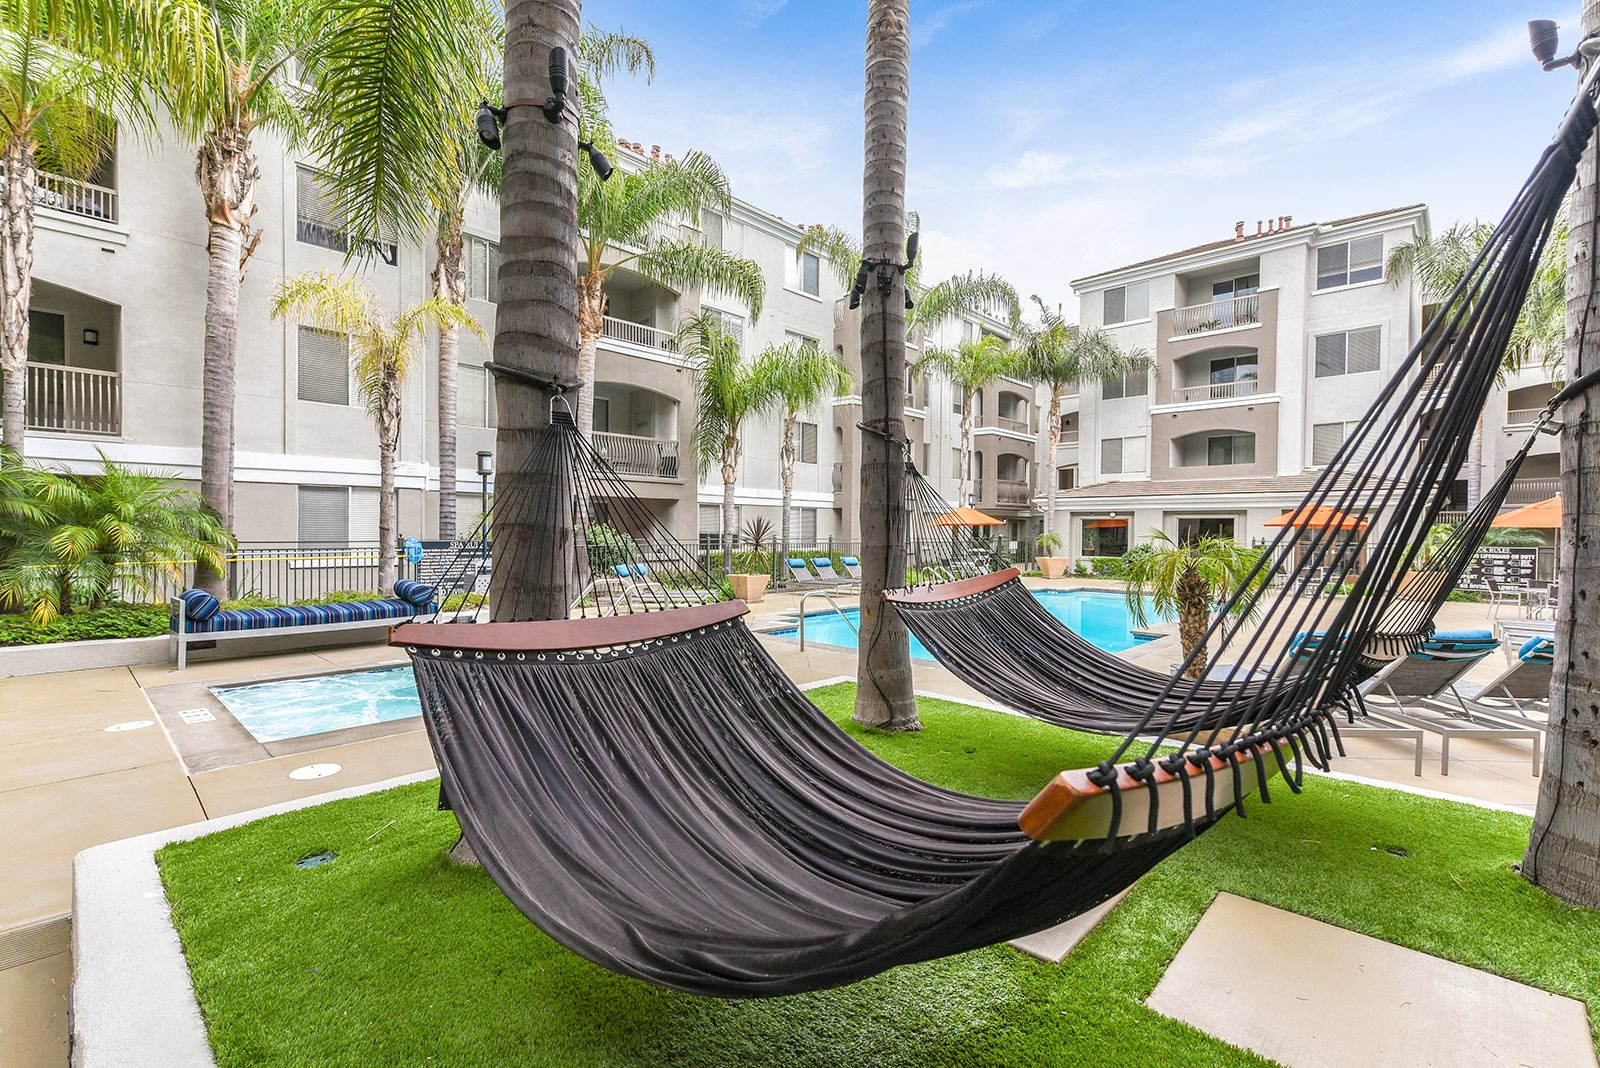 Hammock area near the pool at Windsor at Main Place,  1235 West Town and Country Road, CA